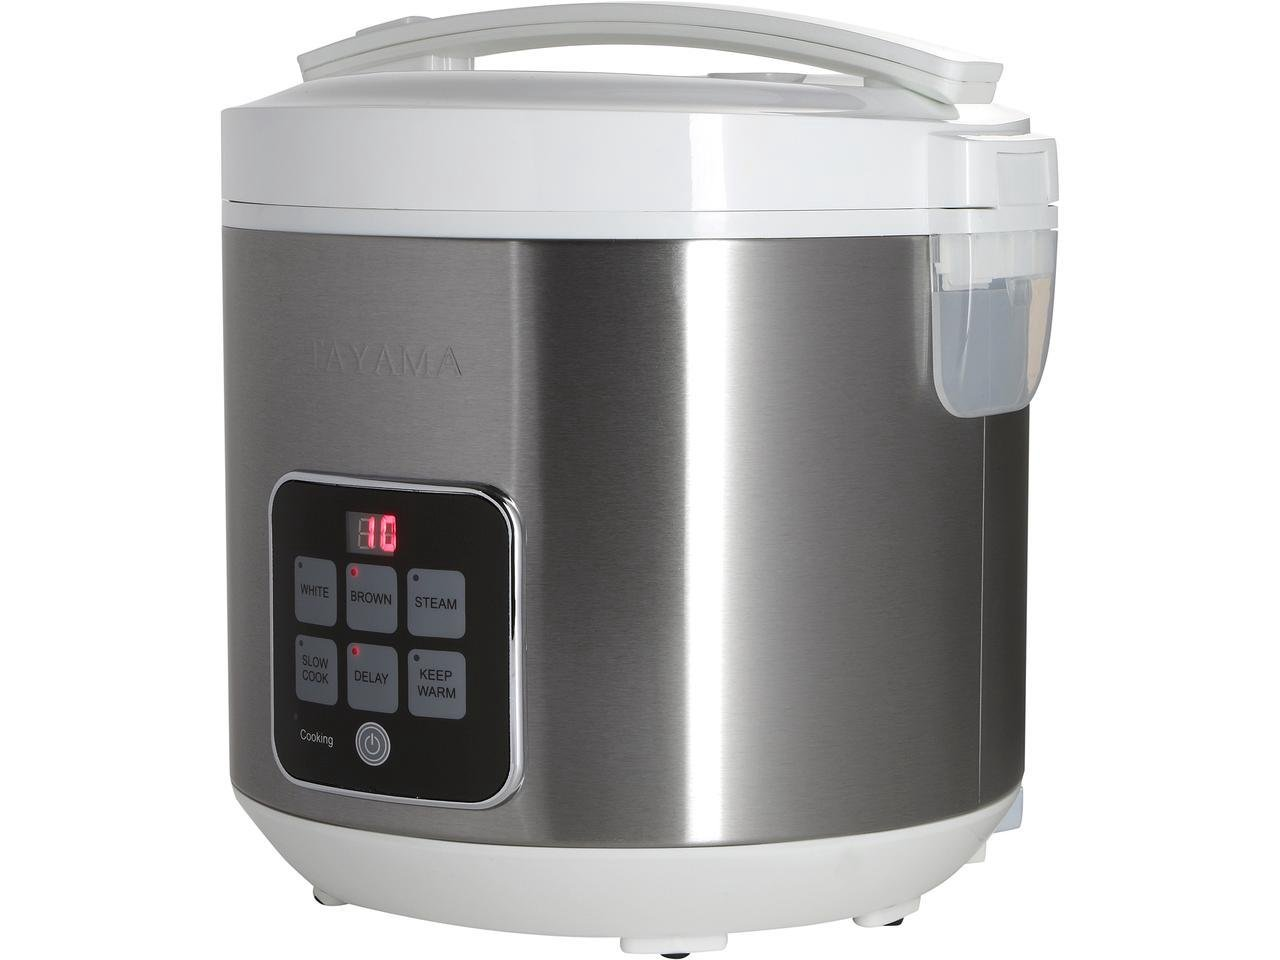 Tayama TRC-50H1 Digital Rice Cooker & Food Steamer, 10 Cup, Black